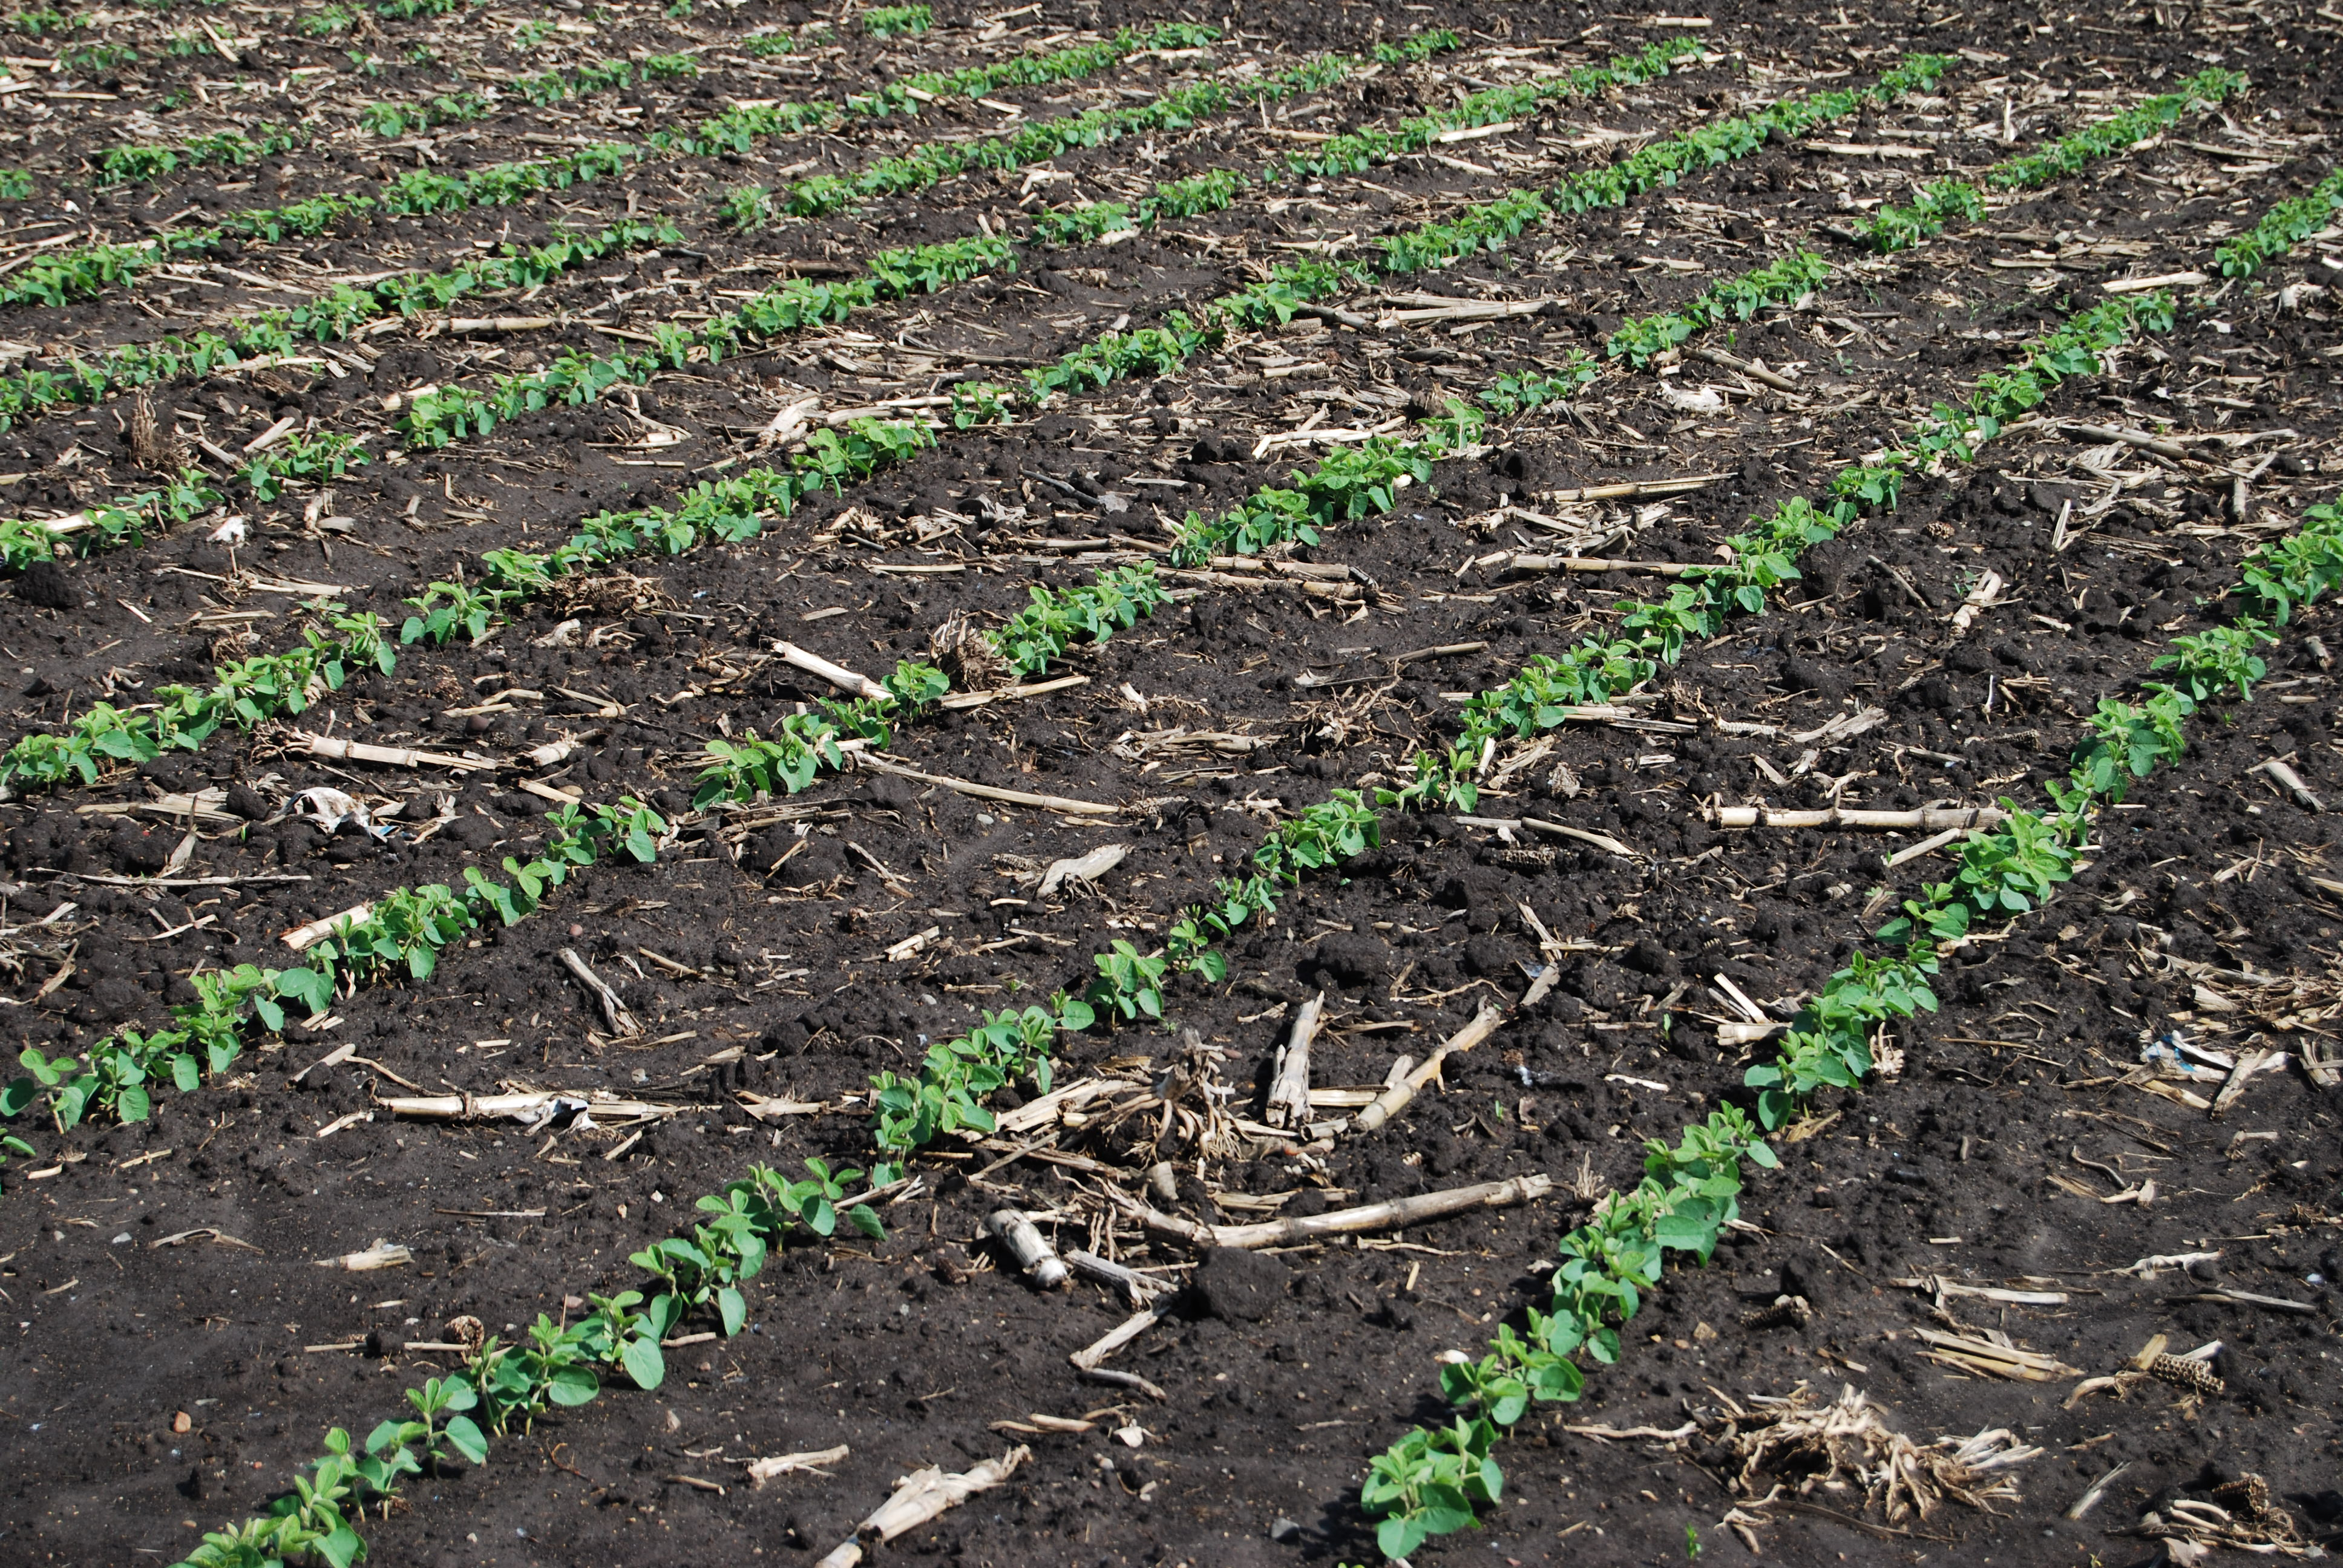 An agronomic photo showing soybean plants.